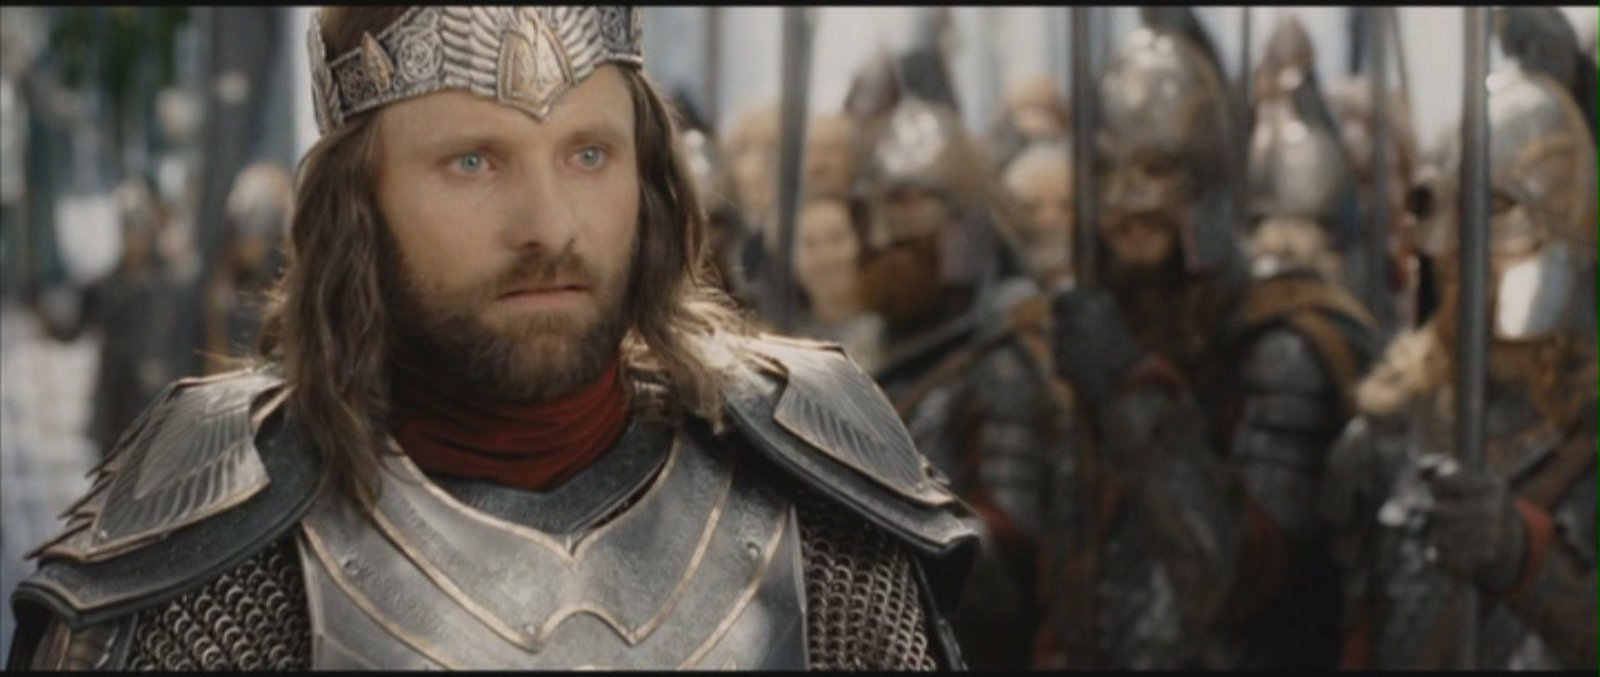 Return Of The King Aragorn Arwen and Aragorn - Lo...